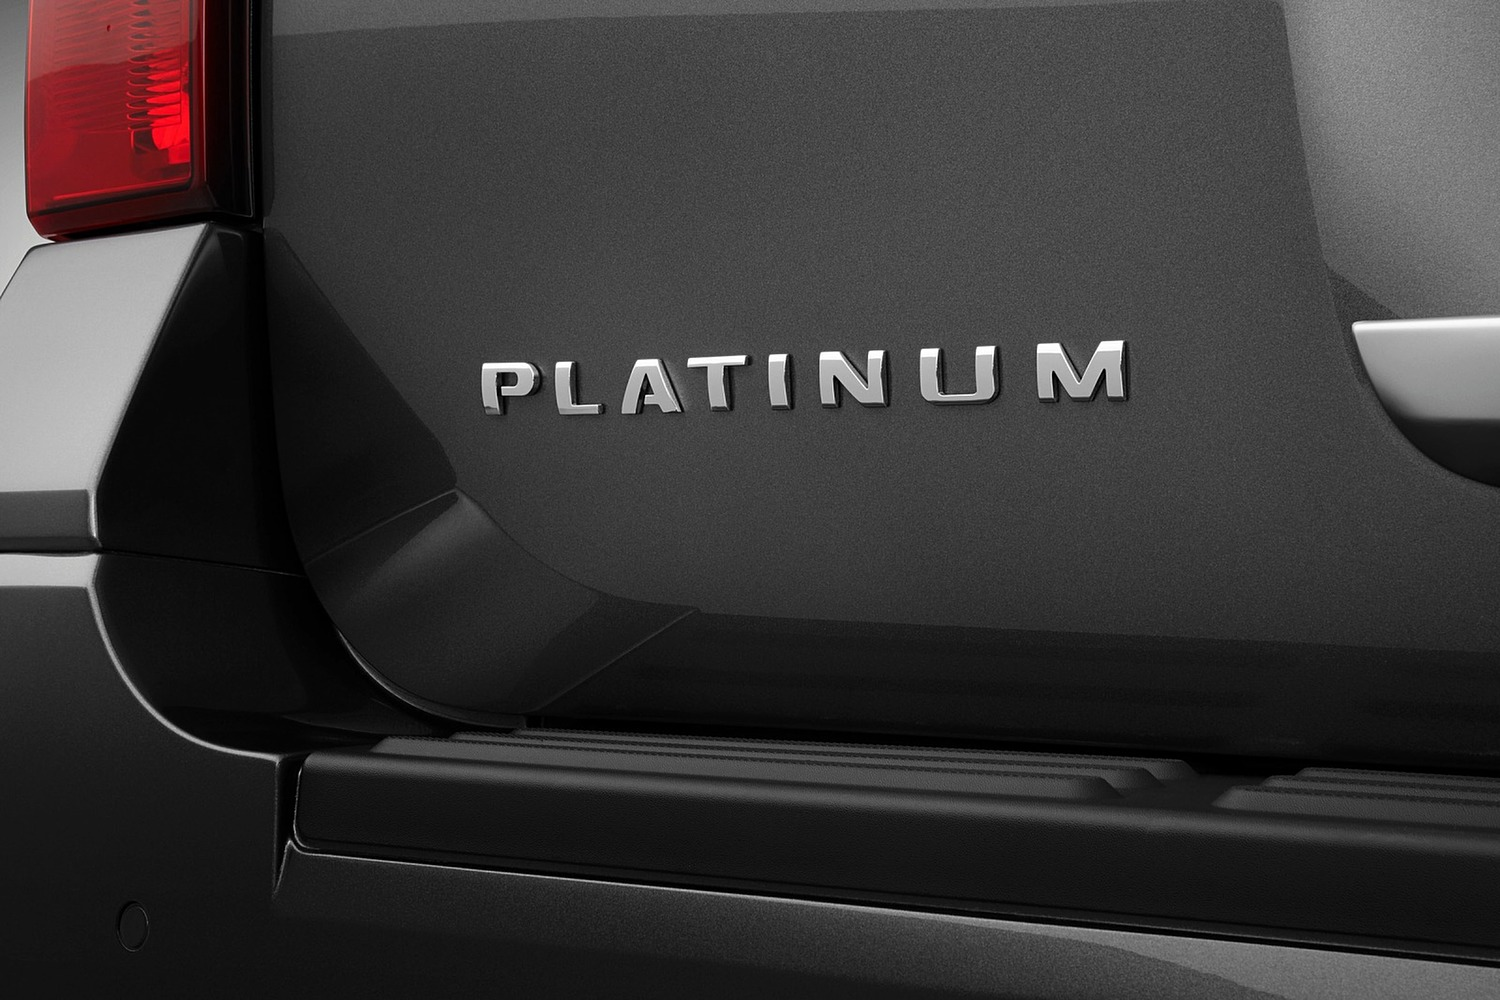 Ford Expedition Platinum 4dr SUV Rear Badge (2015 model year shown)